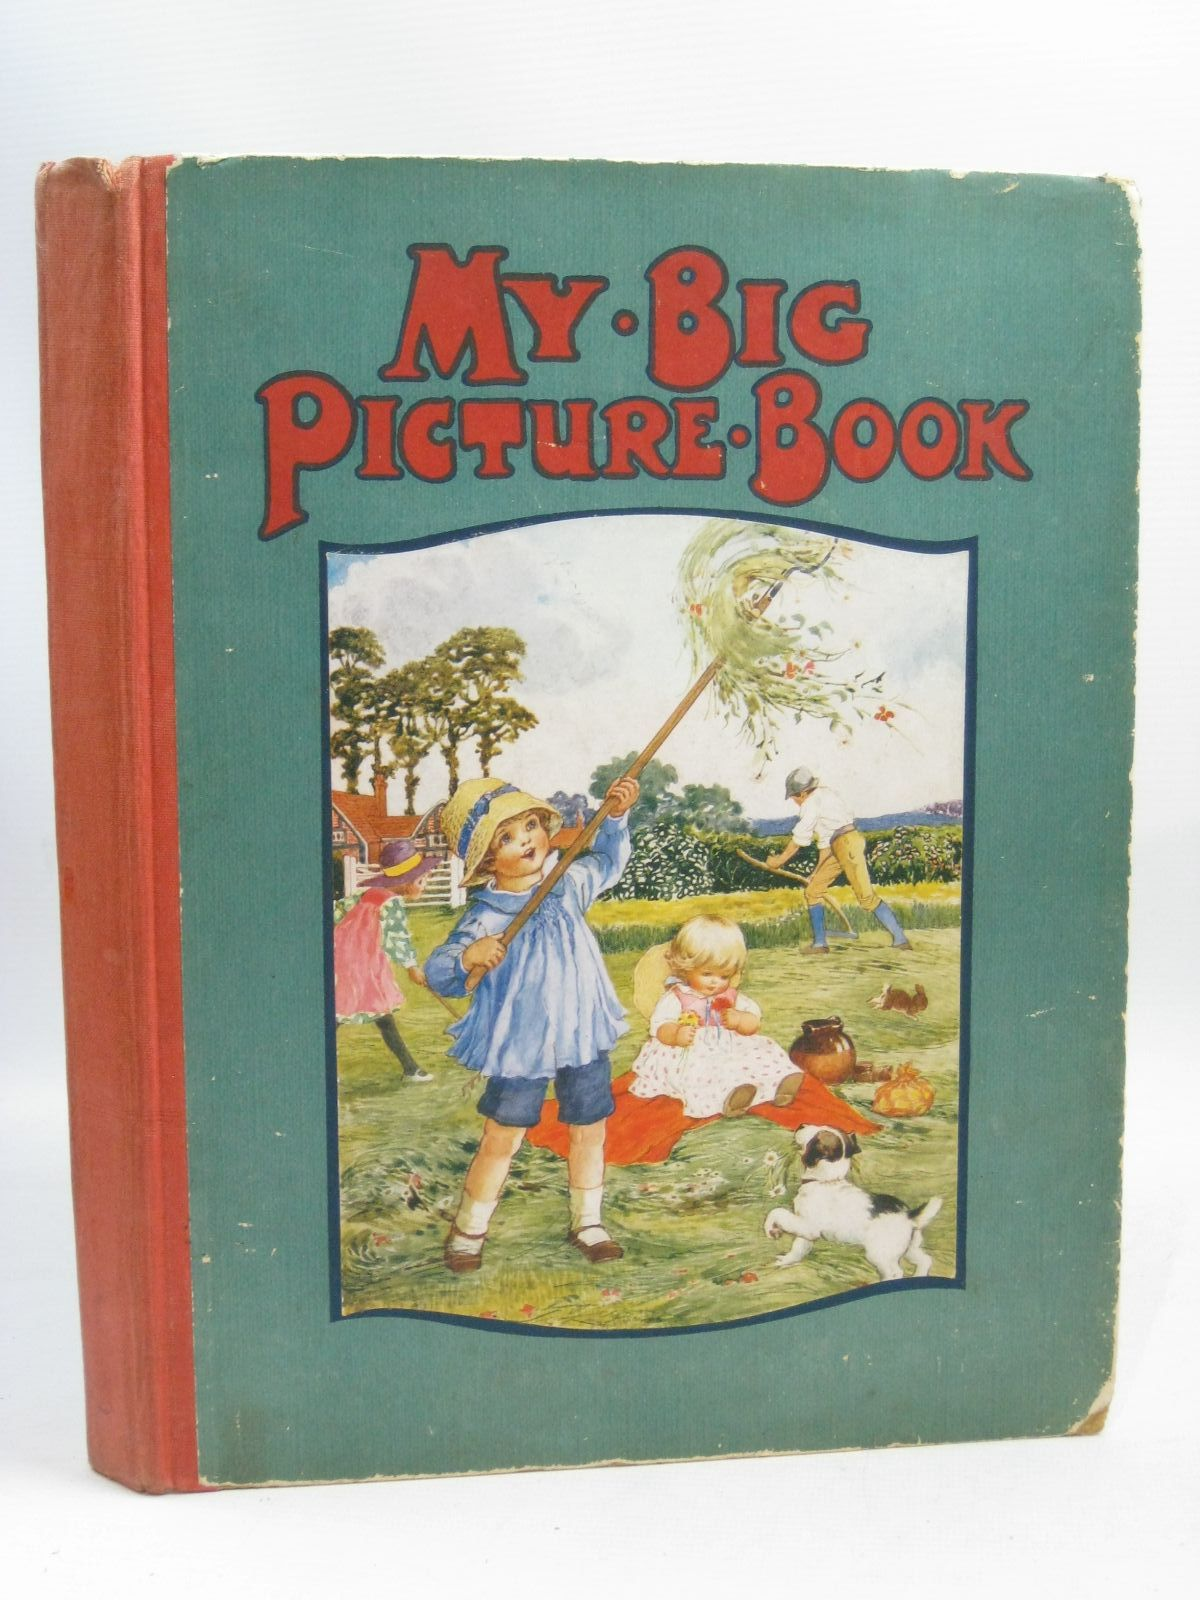 Photo of MY BIG PICTURE BOOK written by Strang, Mrs. Herbert illustrated by Sowerby, Millicent Govey, Lilian A. Rees, E. Dorothy Anderson, Anne et al., published by Humphrey Milford (STOCK CODE: 1505710)  for sale by Stella & Rose's Books